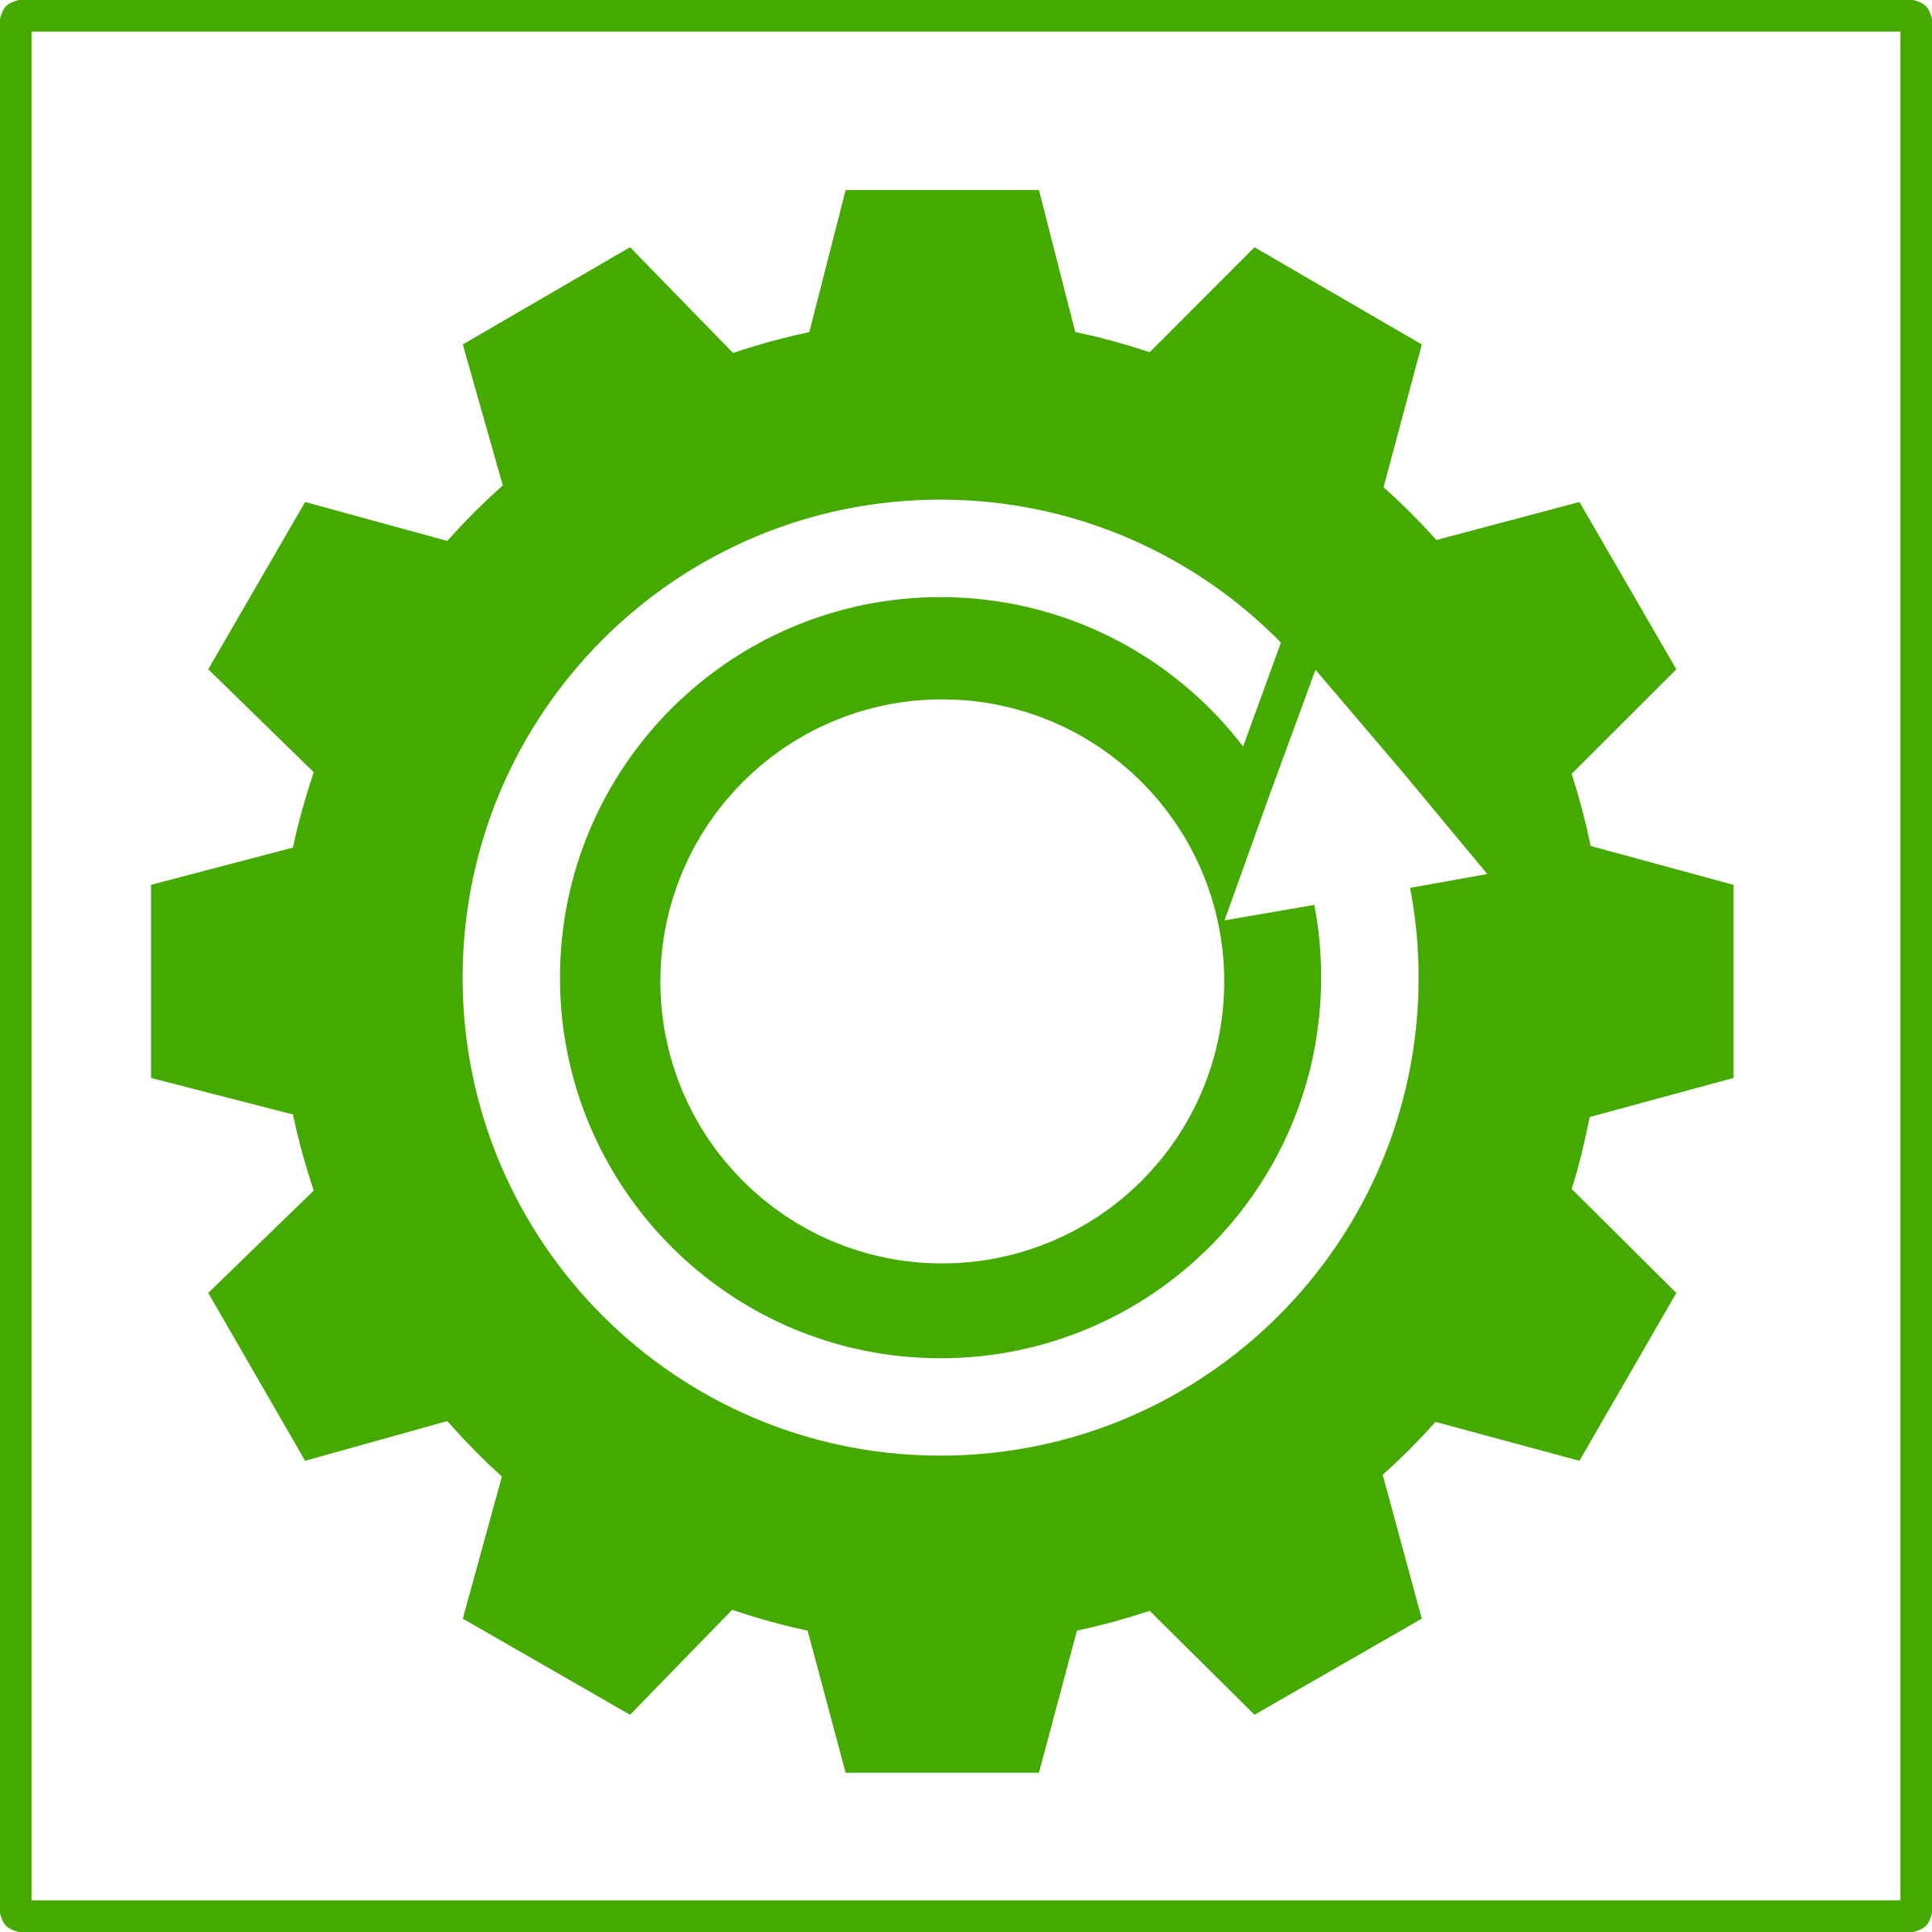 eco green recycling icon by dominiquechappard